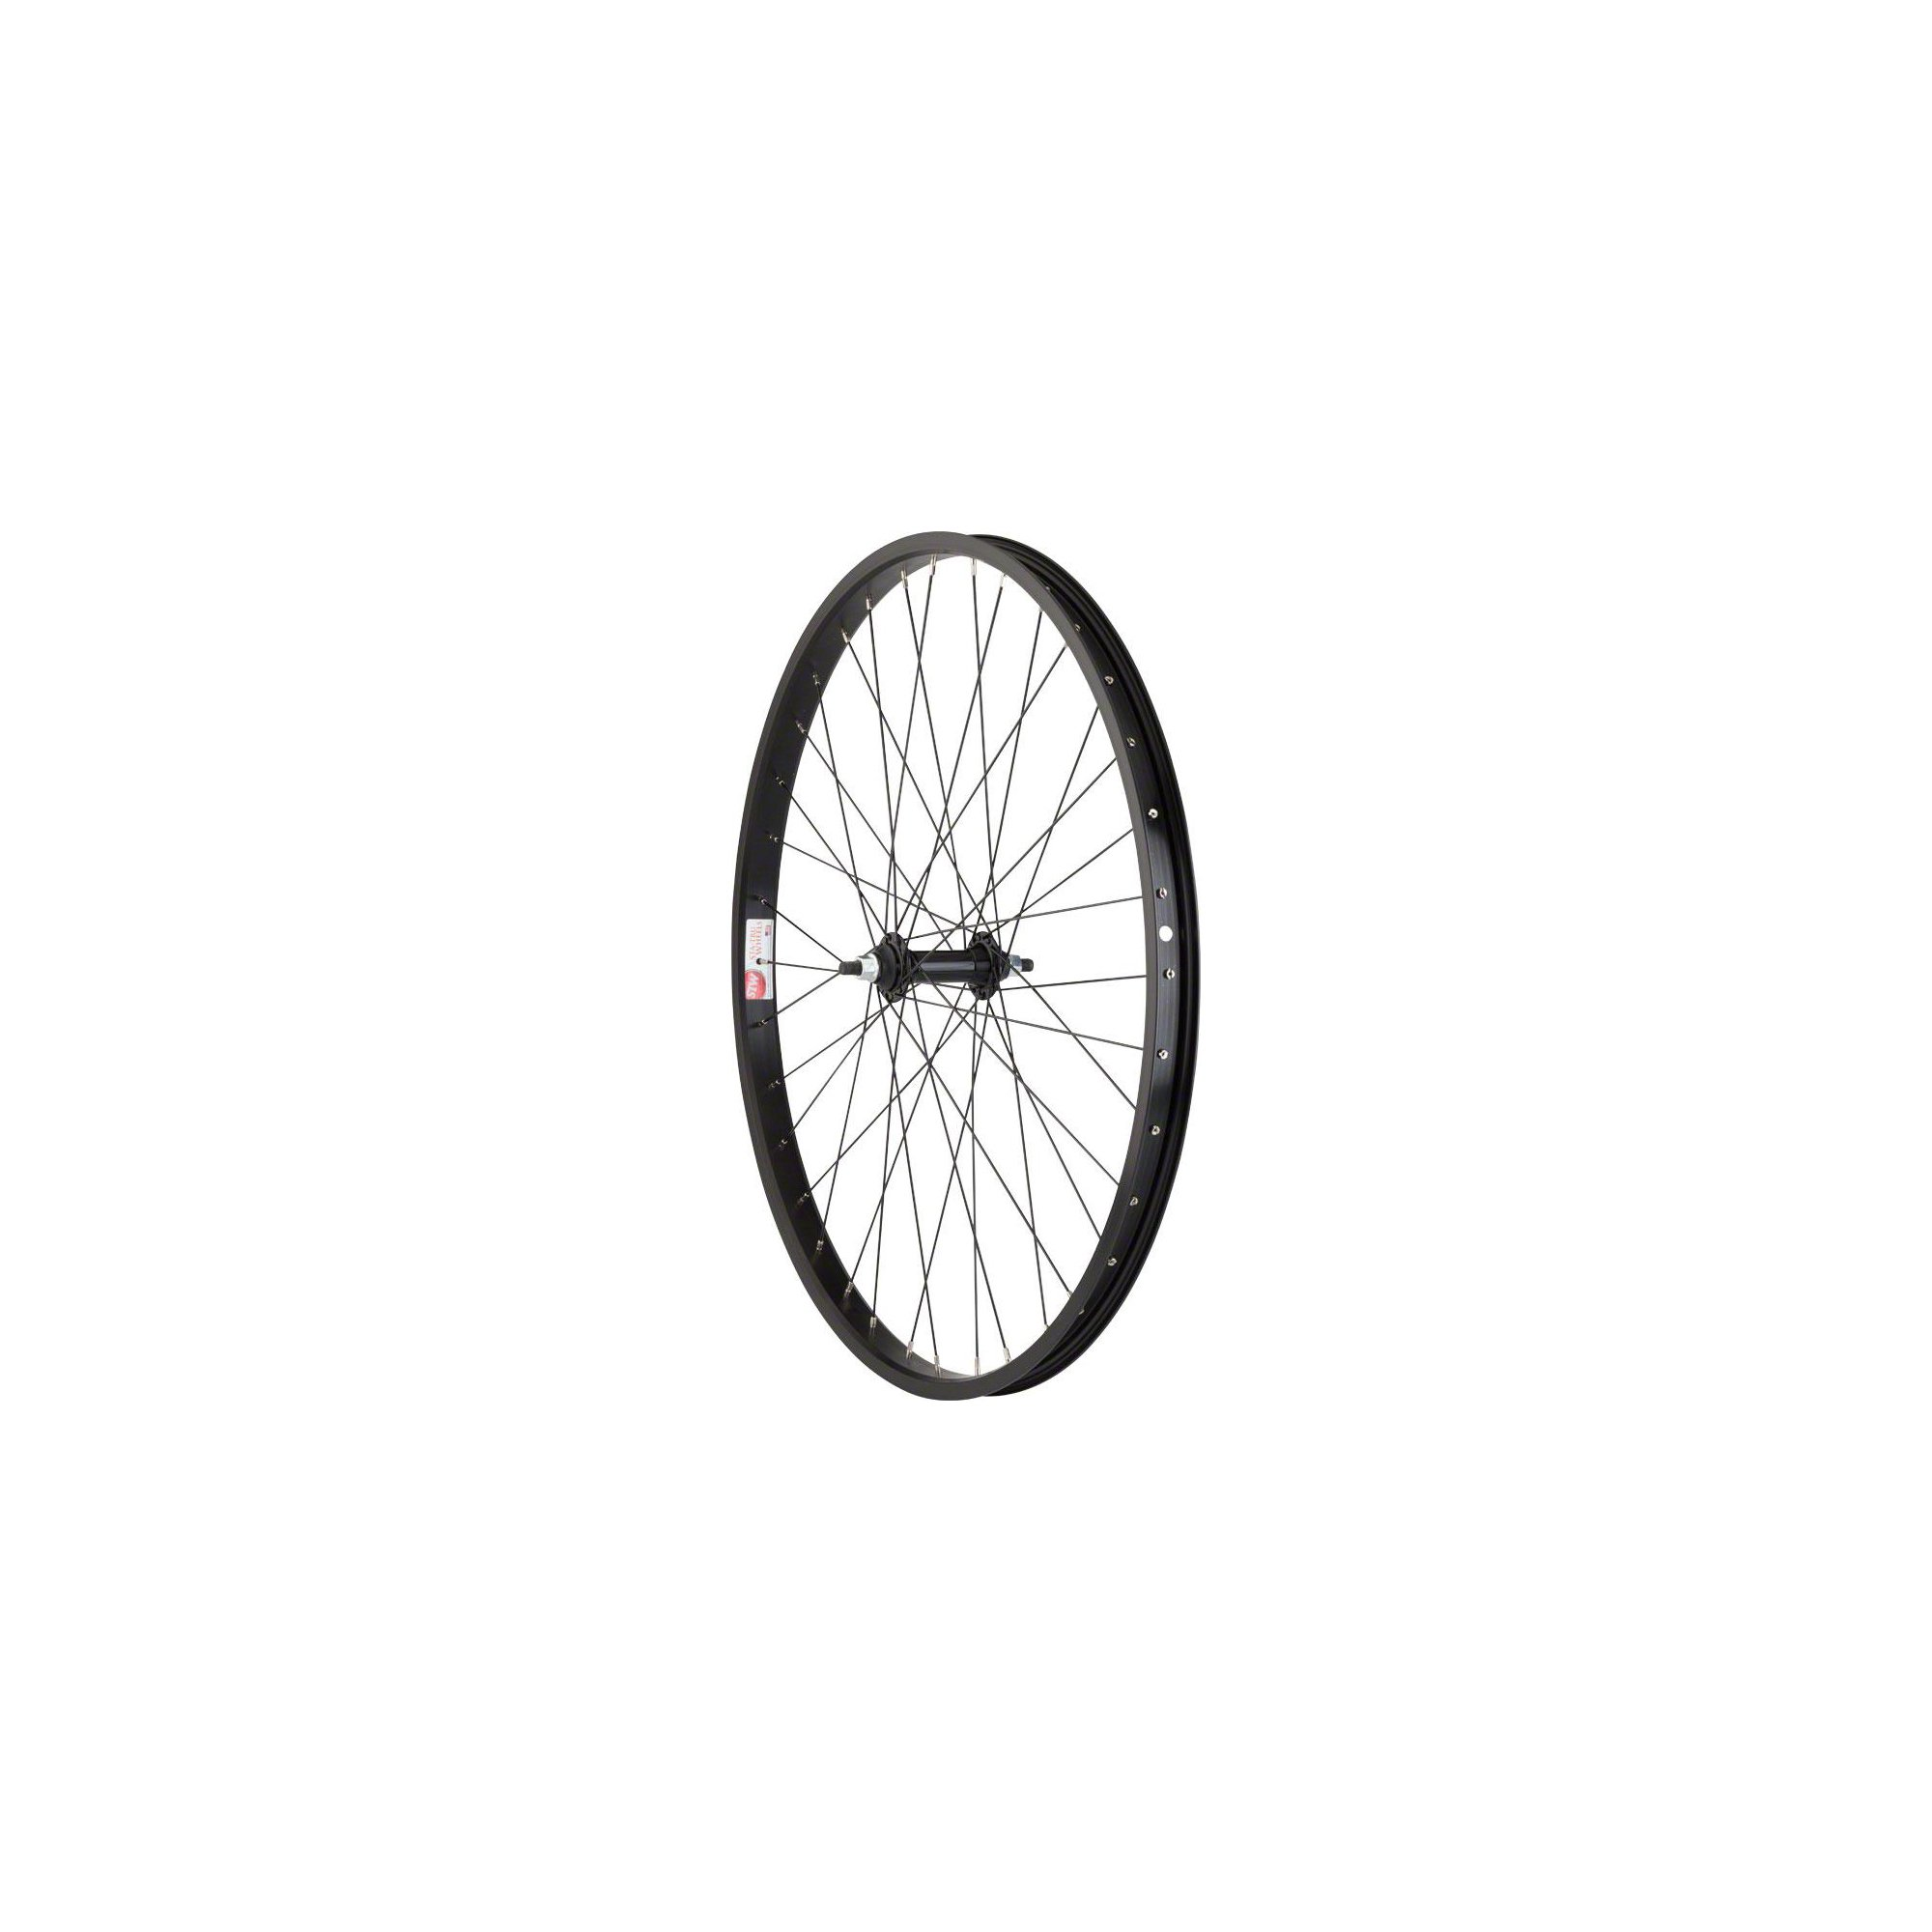 Sta Tru Front Wheel 26x1.75 Solid Thread on Axle with 36 Spokes, Includes Axle Nuts, Black